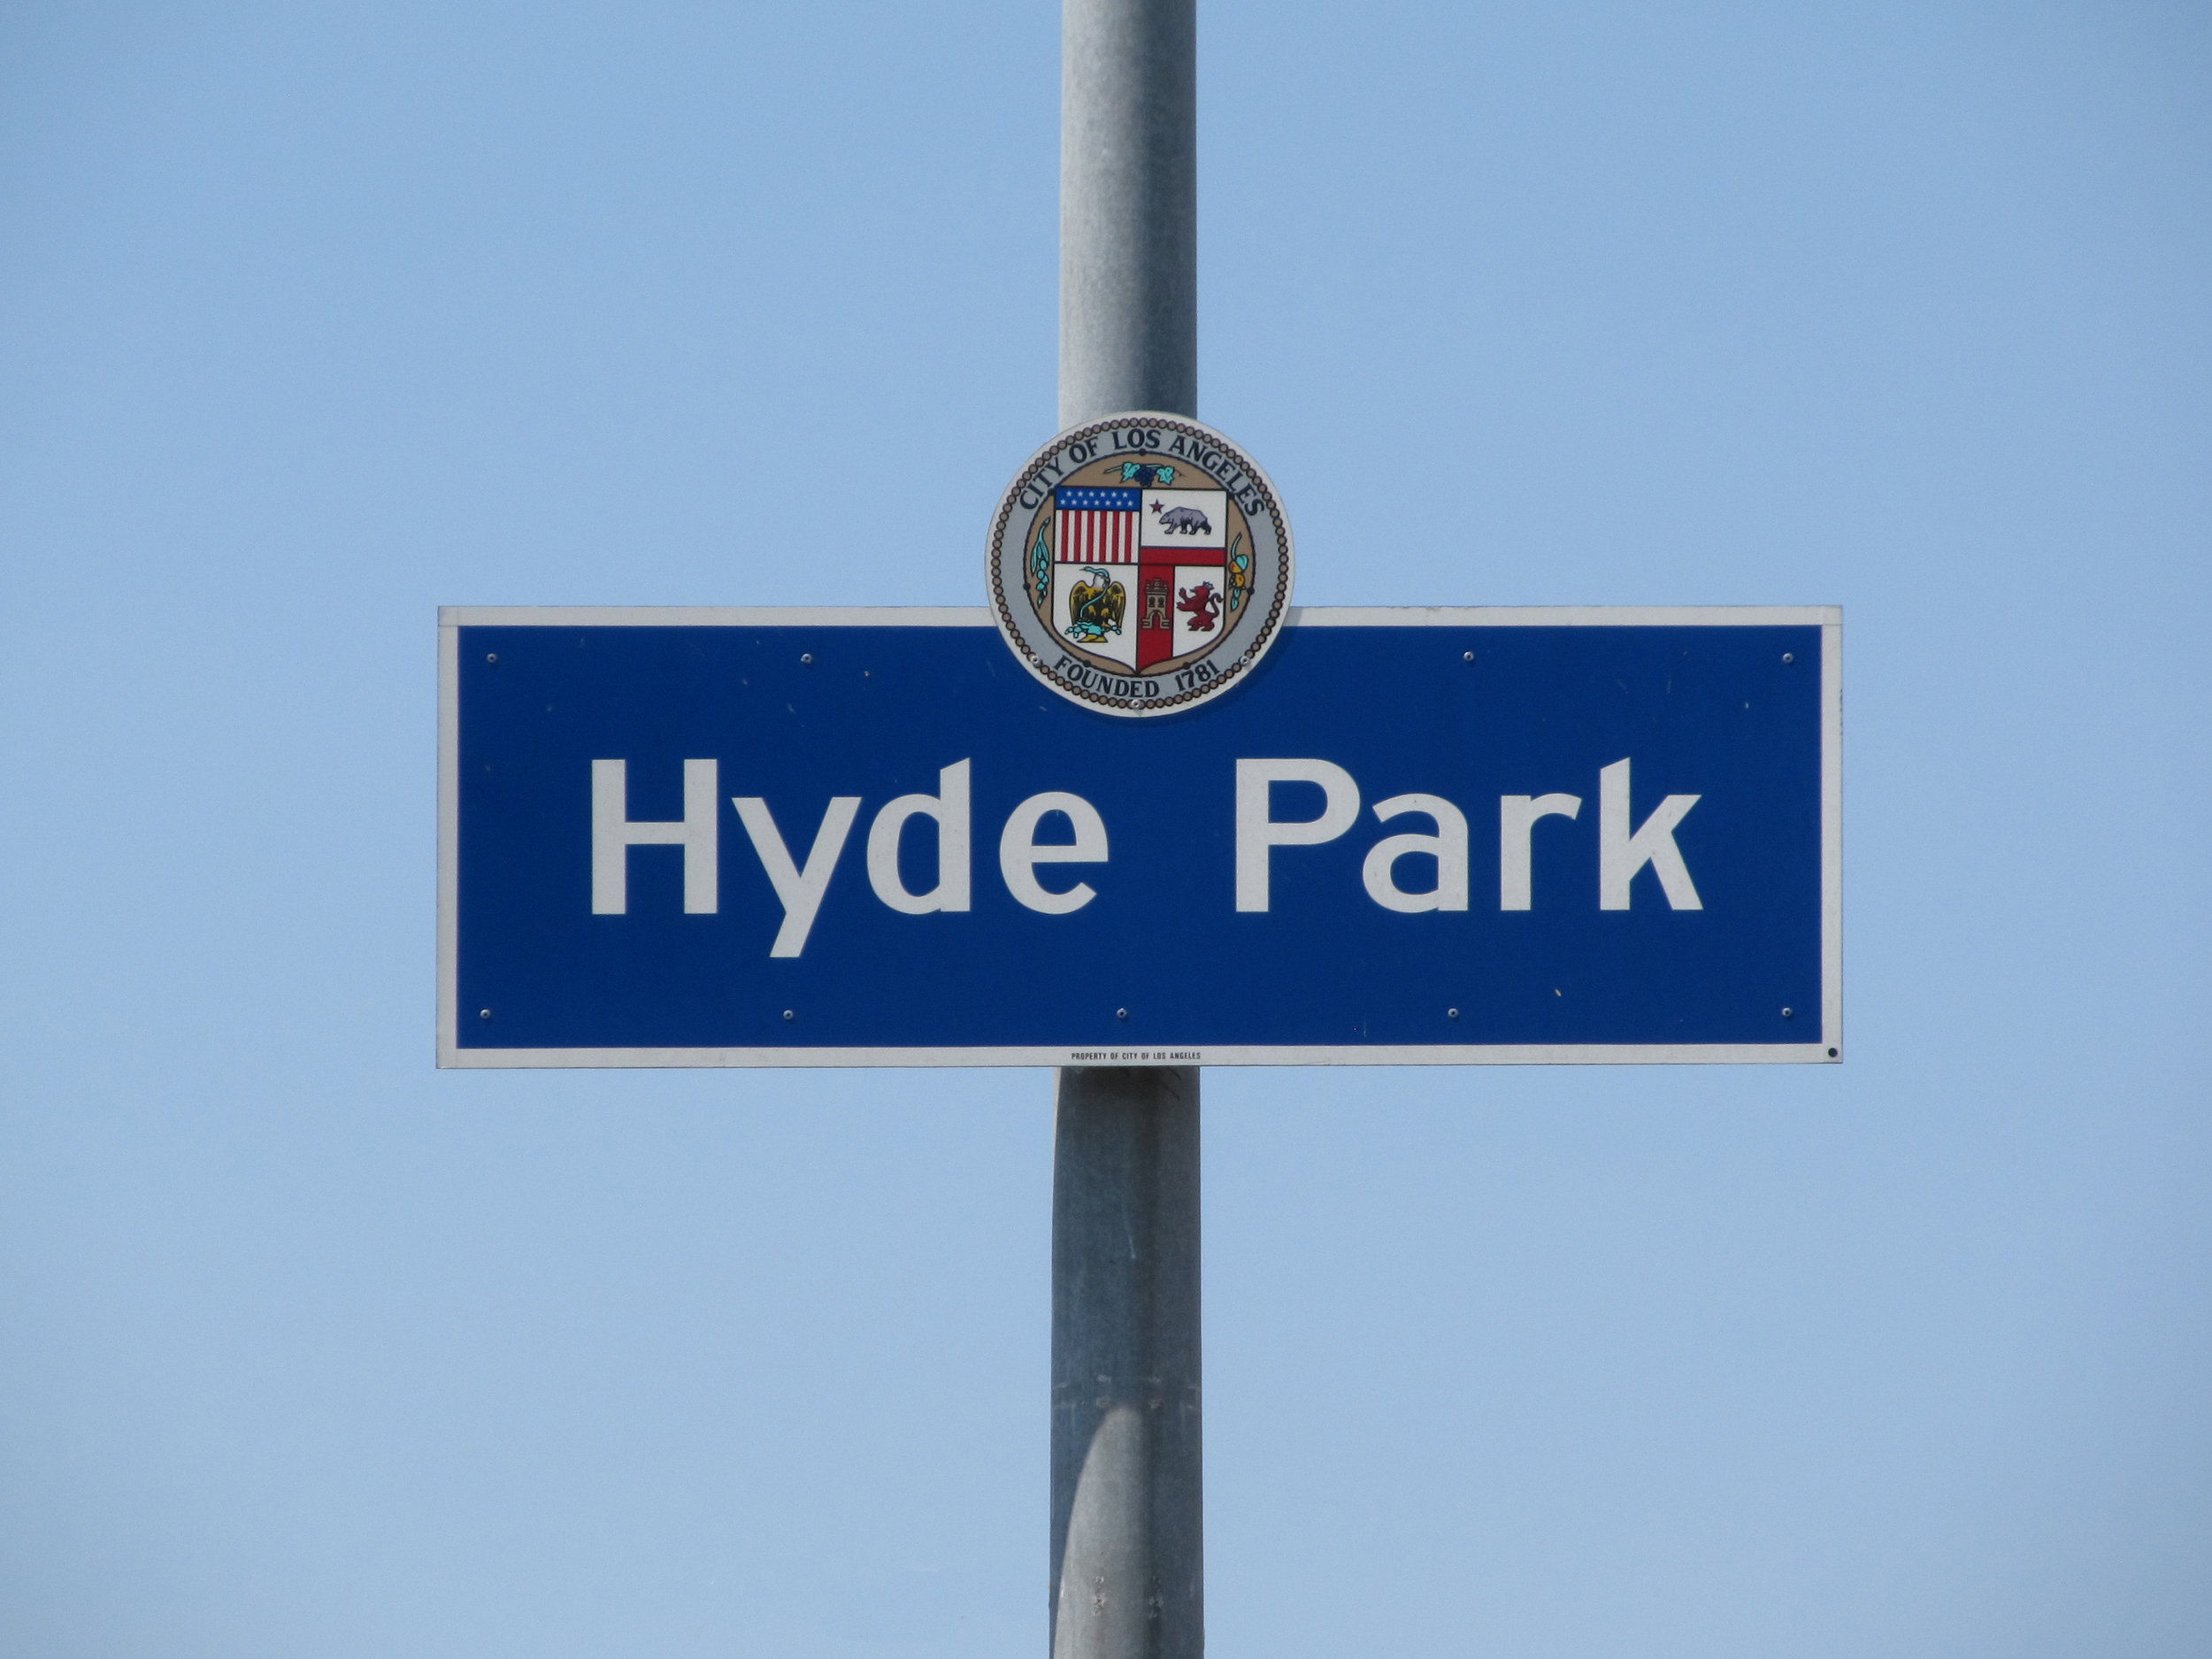 """Hyde Park   Hyde Park is one of the oldest neighborhoods in the city of Los Angeles. It was """"laid out as a town"""" in 1887 as a stop on the Atchison, Topeka and Santa Fe Railway's Harbor Subdivision, which ran from Downtown Los Angeles to the port at Wilmington in a westward loop. It was incorporated as a city in 1922 and had its own government. However, on May 17, 1923, its 1.2 square miles was consolidated with the larger city of Los Angeles after a favorable vote by Hyde Park residents. The city of Hyde Park is bordered by 60th Street on the north, Van Ness (now 8th) Avenue on the east,Florence Avenue on the south, and West Boulevard on the west."""